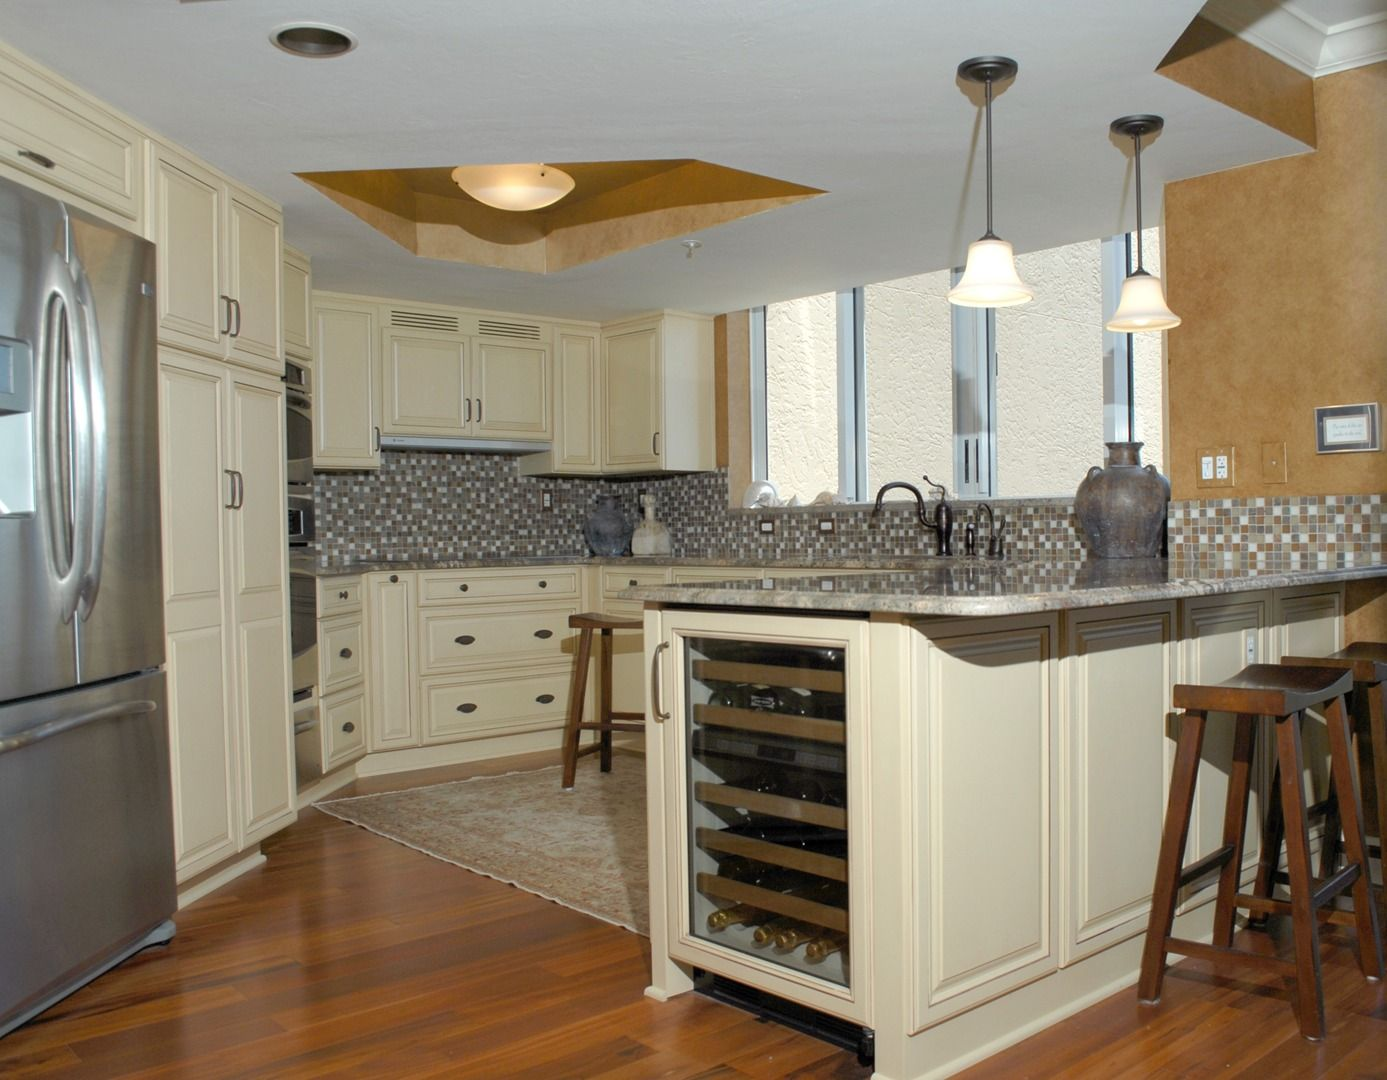 Remodeling Kitchens And Bathrooms Alley Design To Build Naples